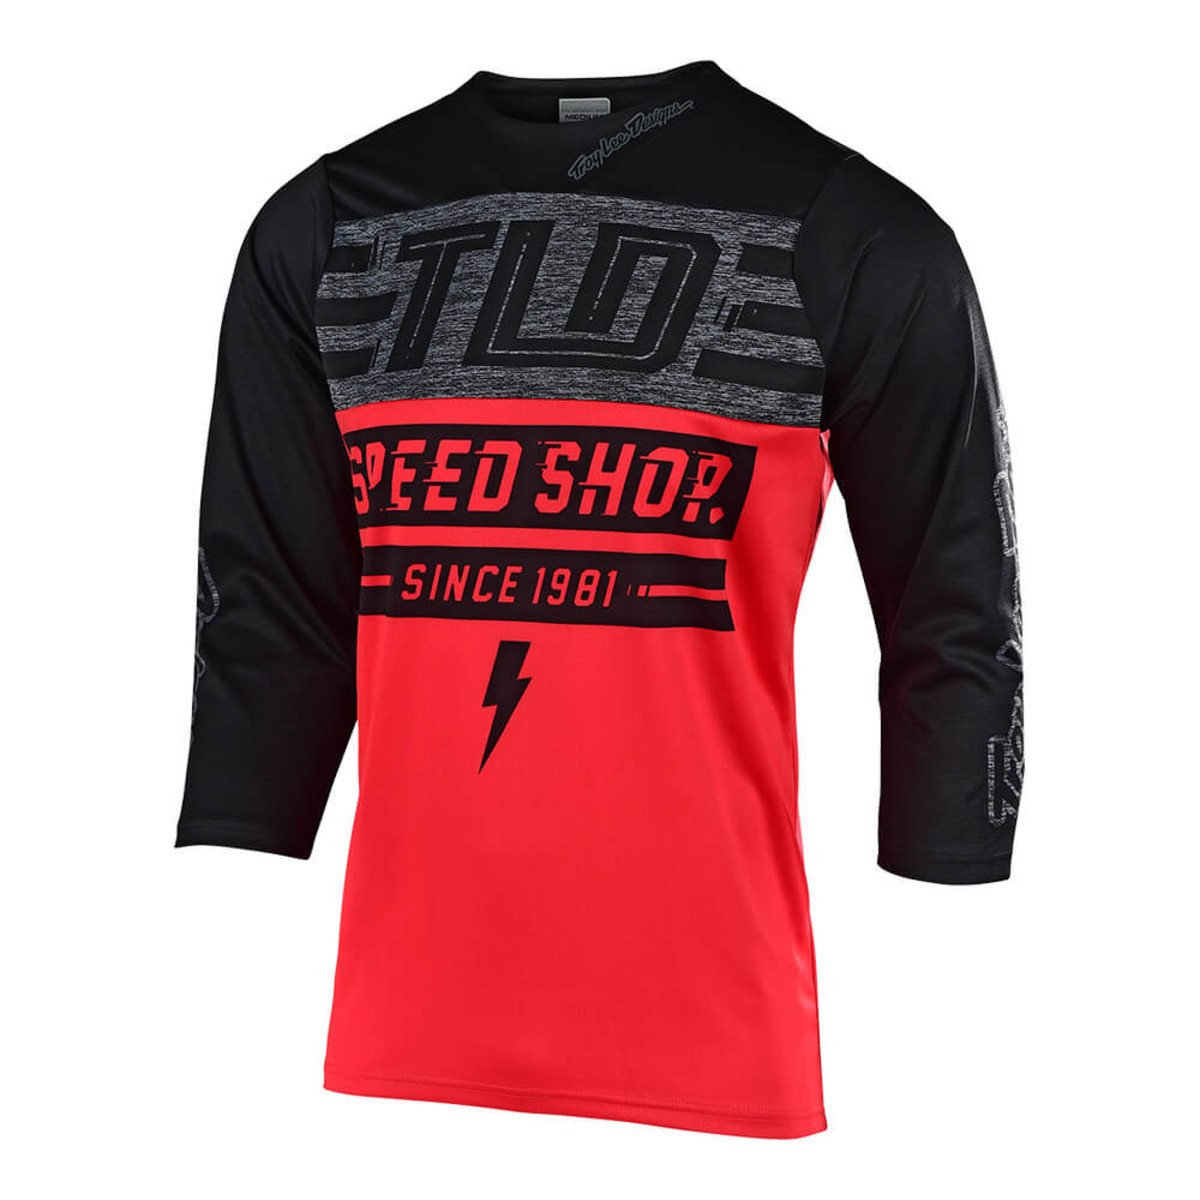 6a0df2335 Troy Lee Designs Ruckus Bolt Short Sleeve MTB Jersey - 2019